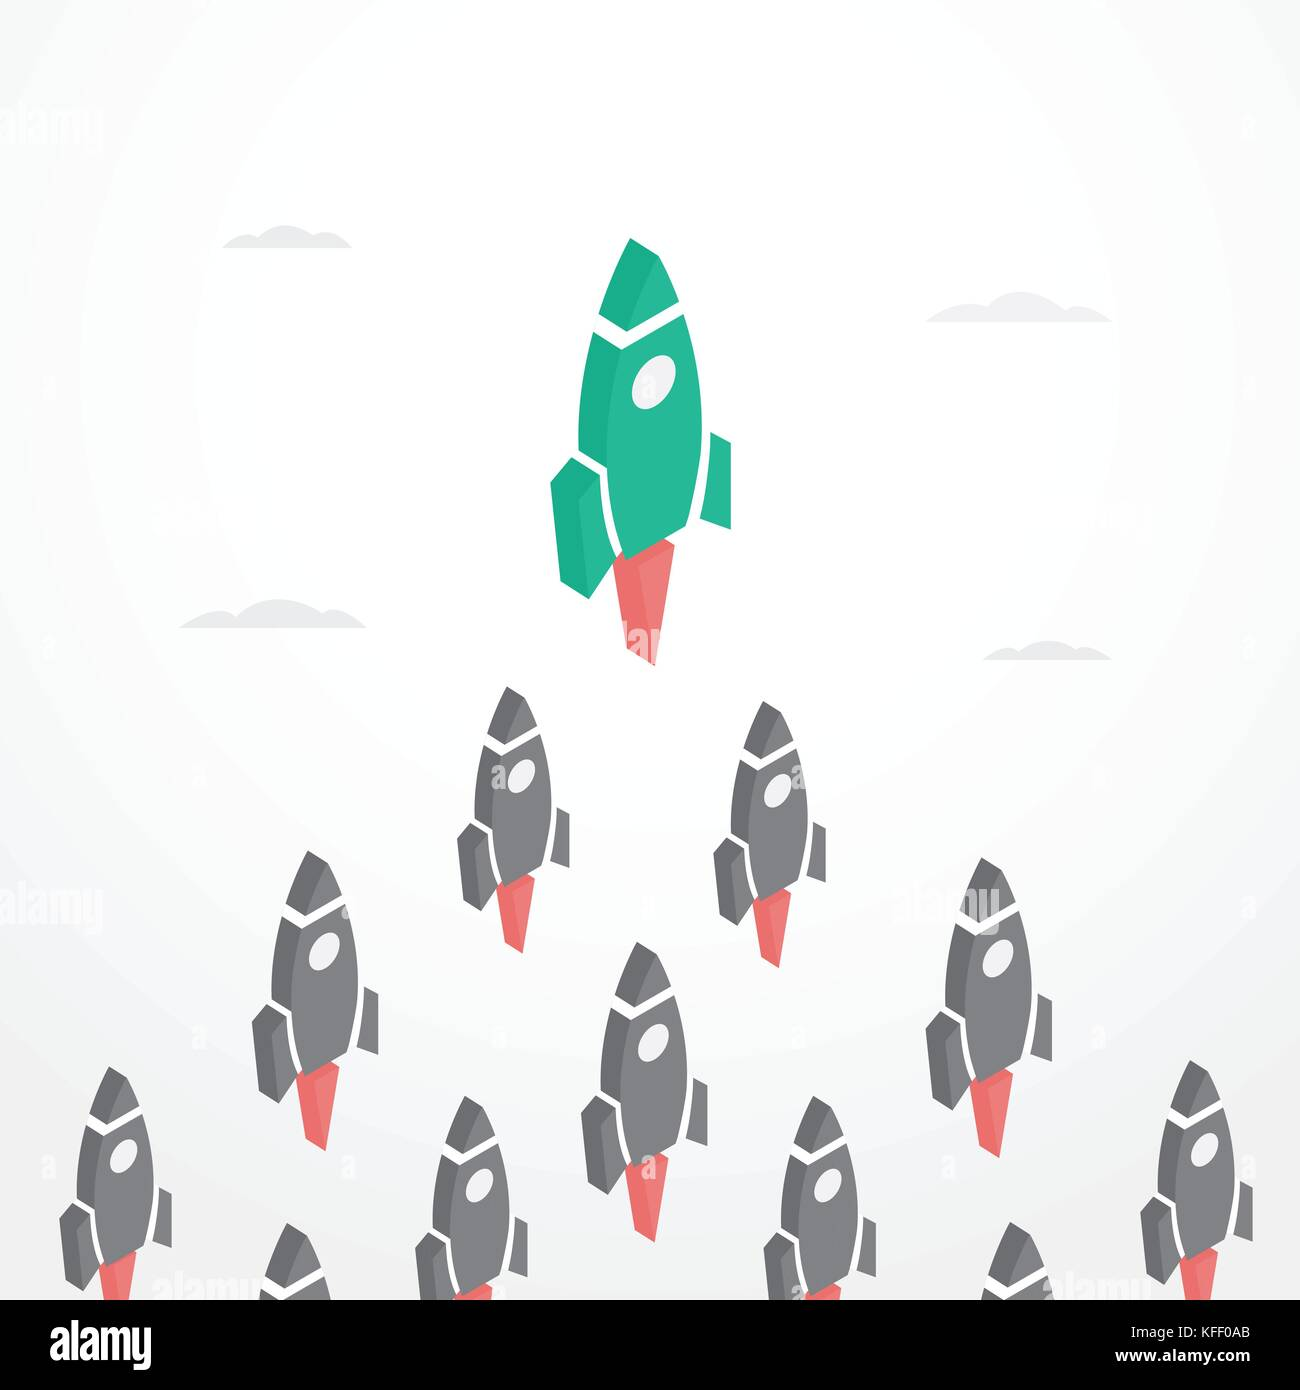 Leadership Concept with rockets in isometric style - Stock Image